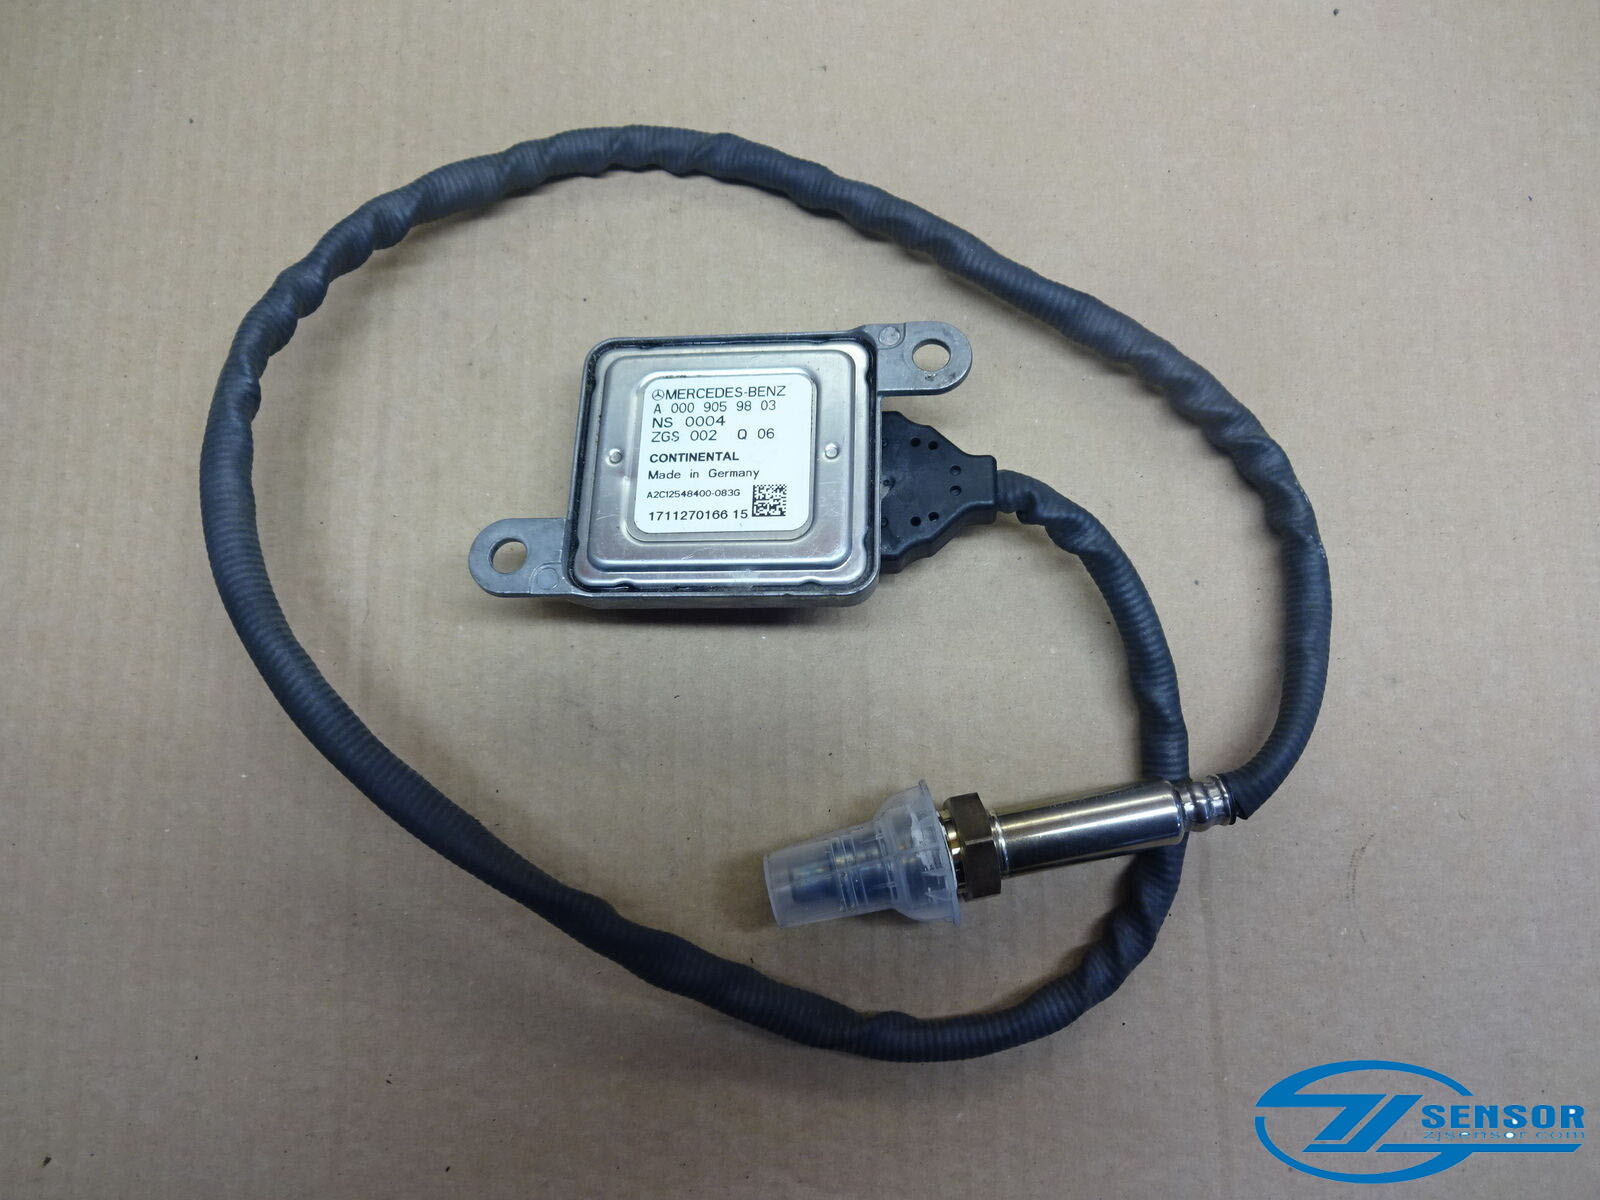 5WK96683E/A 000 905 9803 Auto Car Nitrogen Oxide (NOX) Sensor For Benz